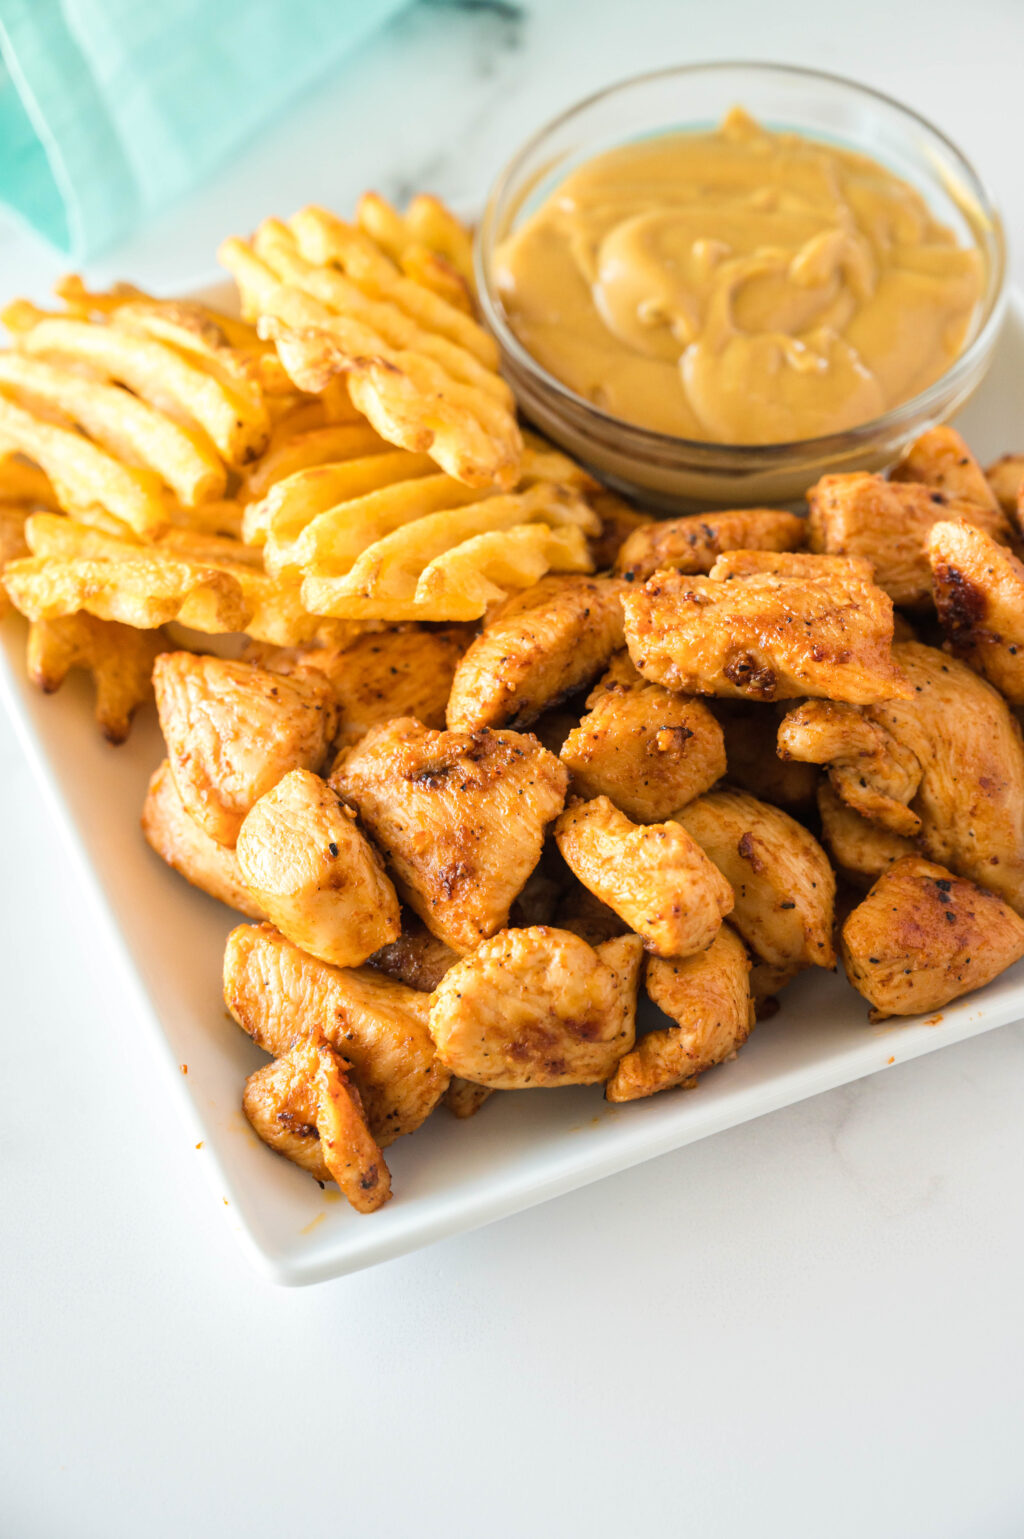 copycat chick-fil-a grilled nuggets on a plate